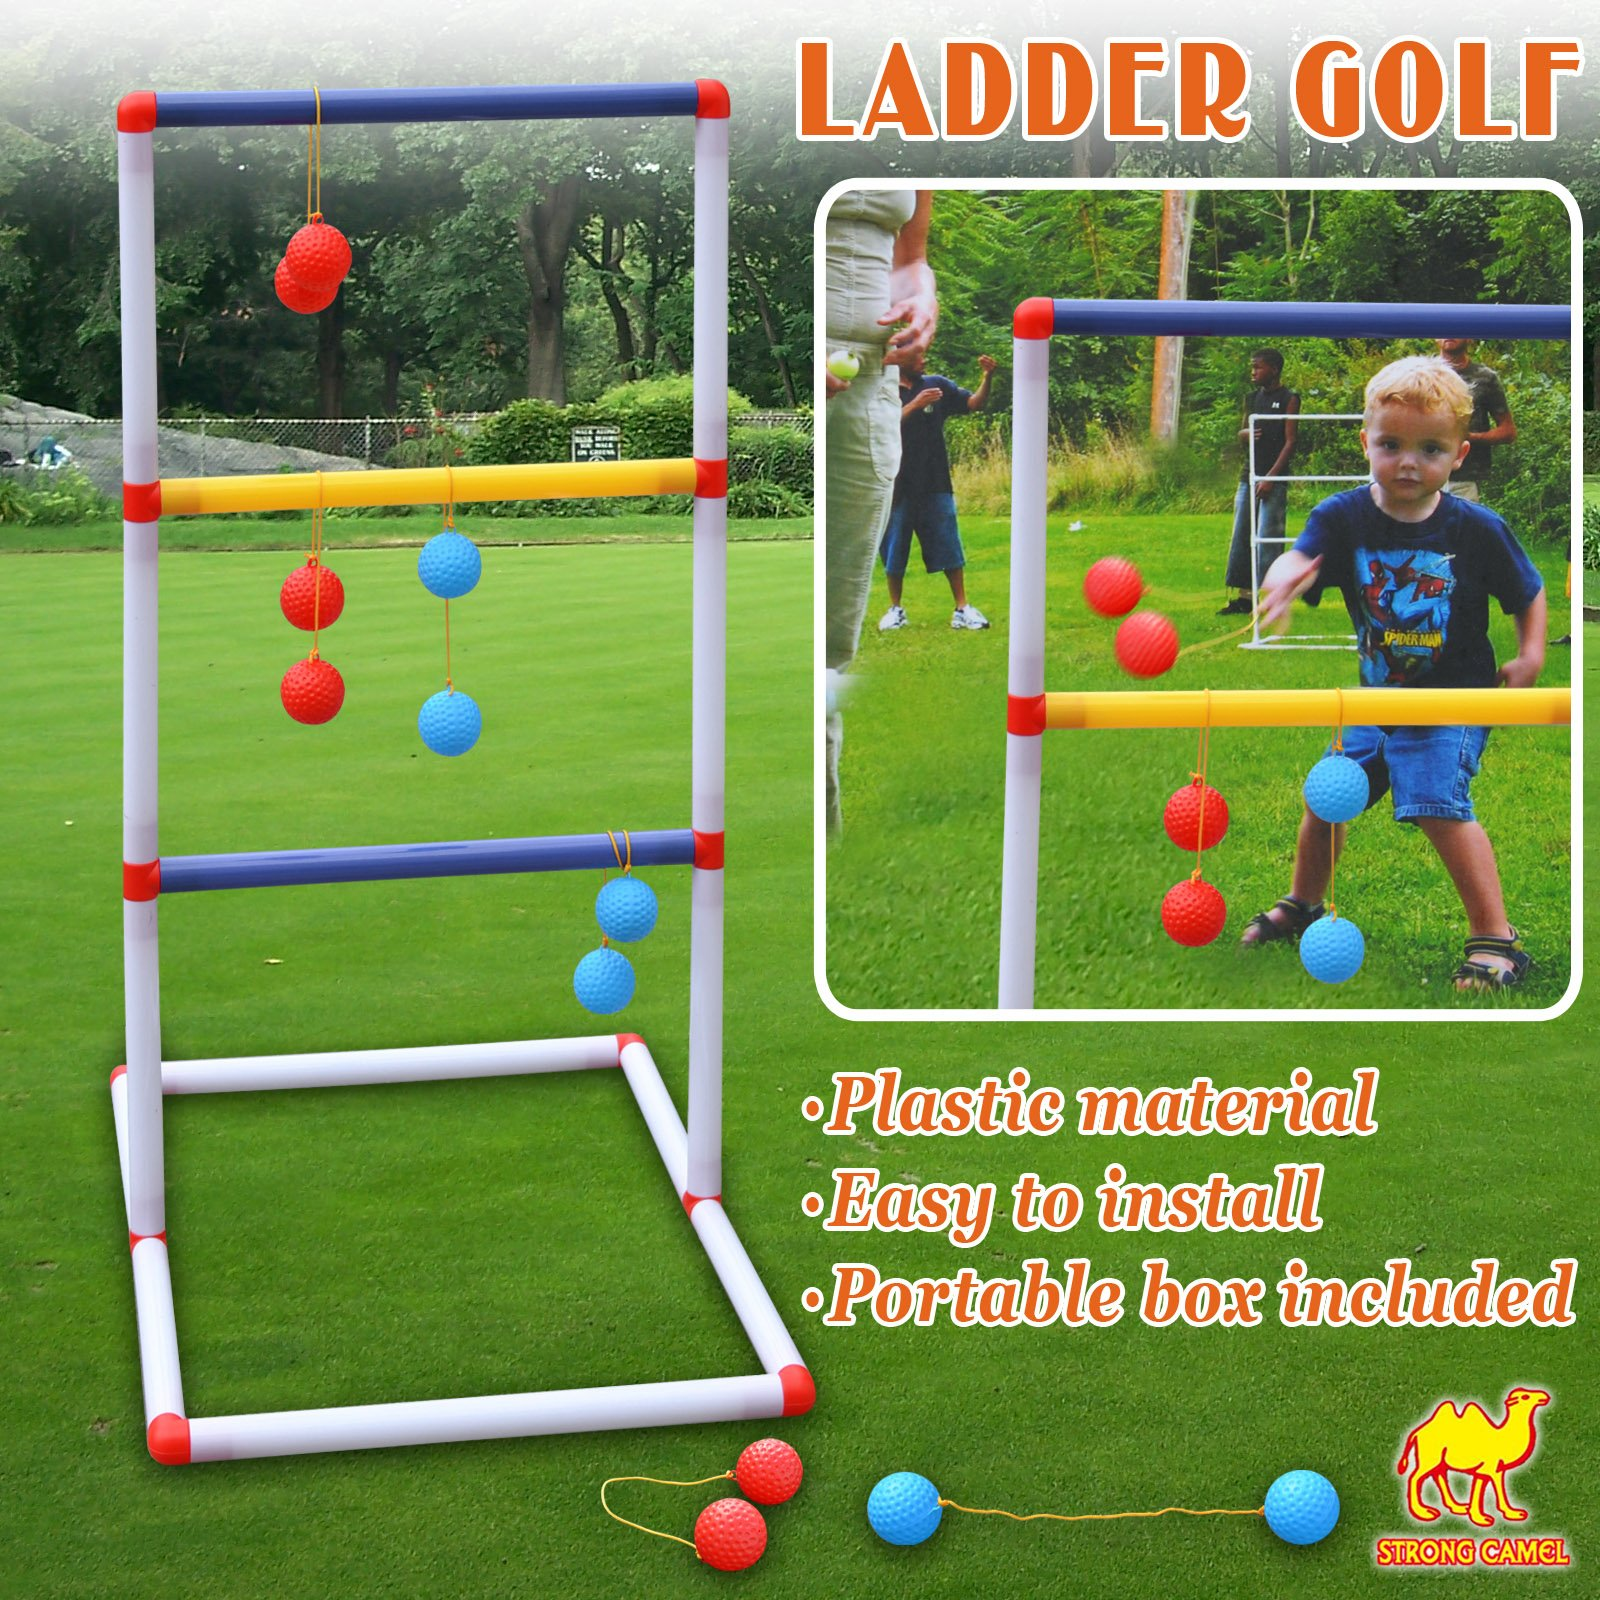 Strong Camel Ladder Toss Game Set Golf Backyard Family Games with 6 Bolos Kids Child Sports Ladderball Adults by Strong Camel